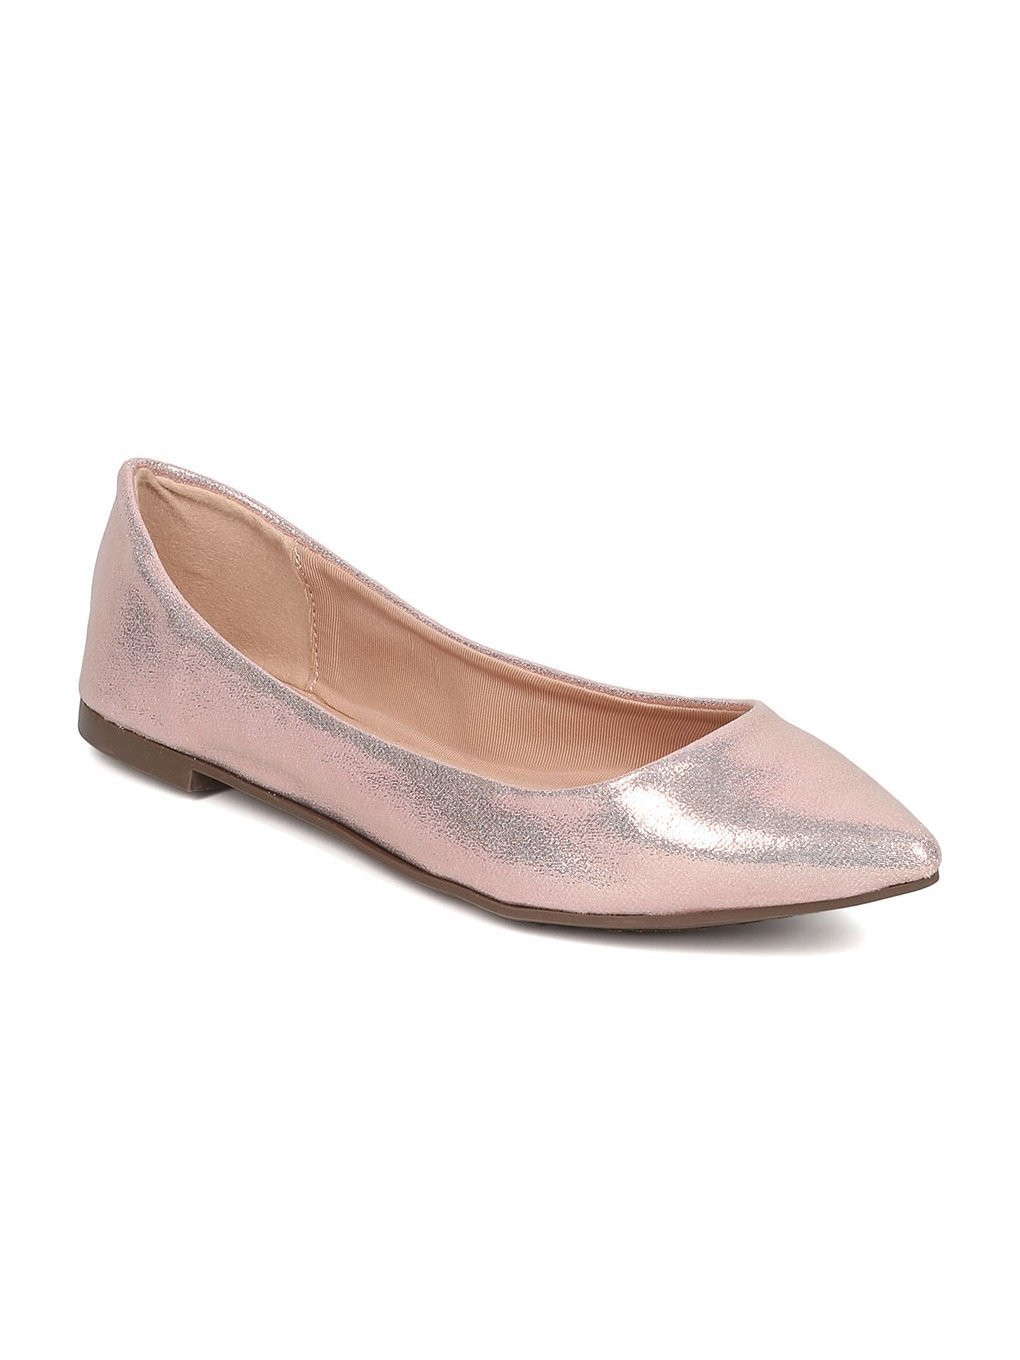 Breckelle's Women Faux Suede Pointy Toe Ballet Flat GH13 B06XYTLLTM 6 M US|Rose Gold